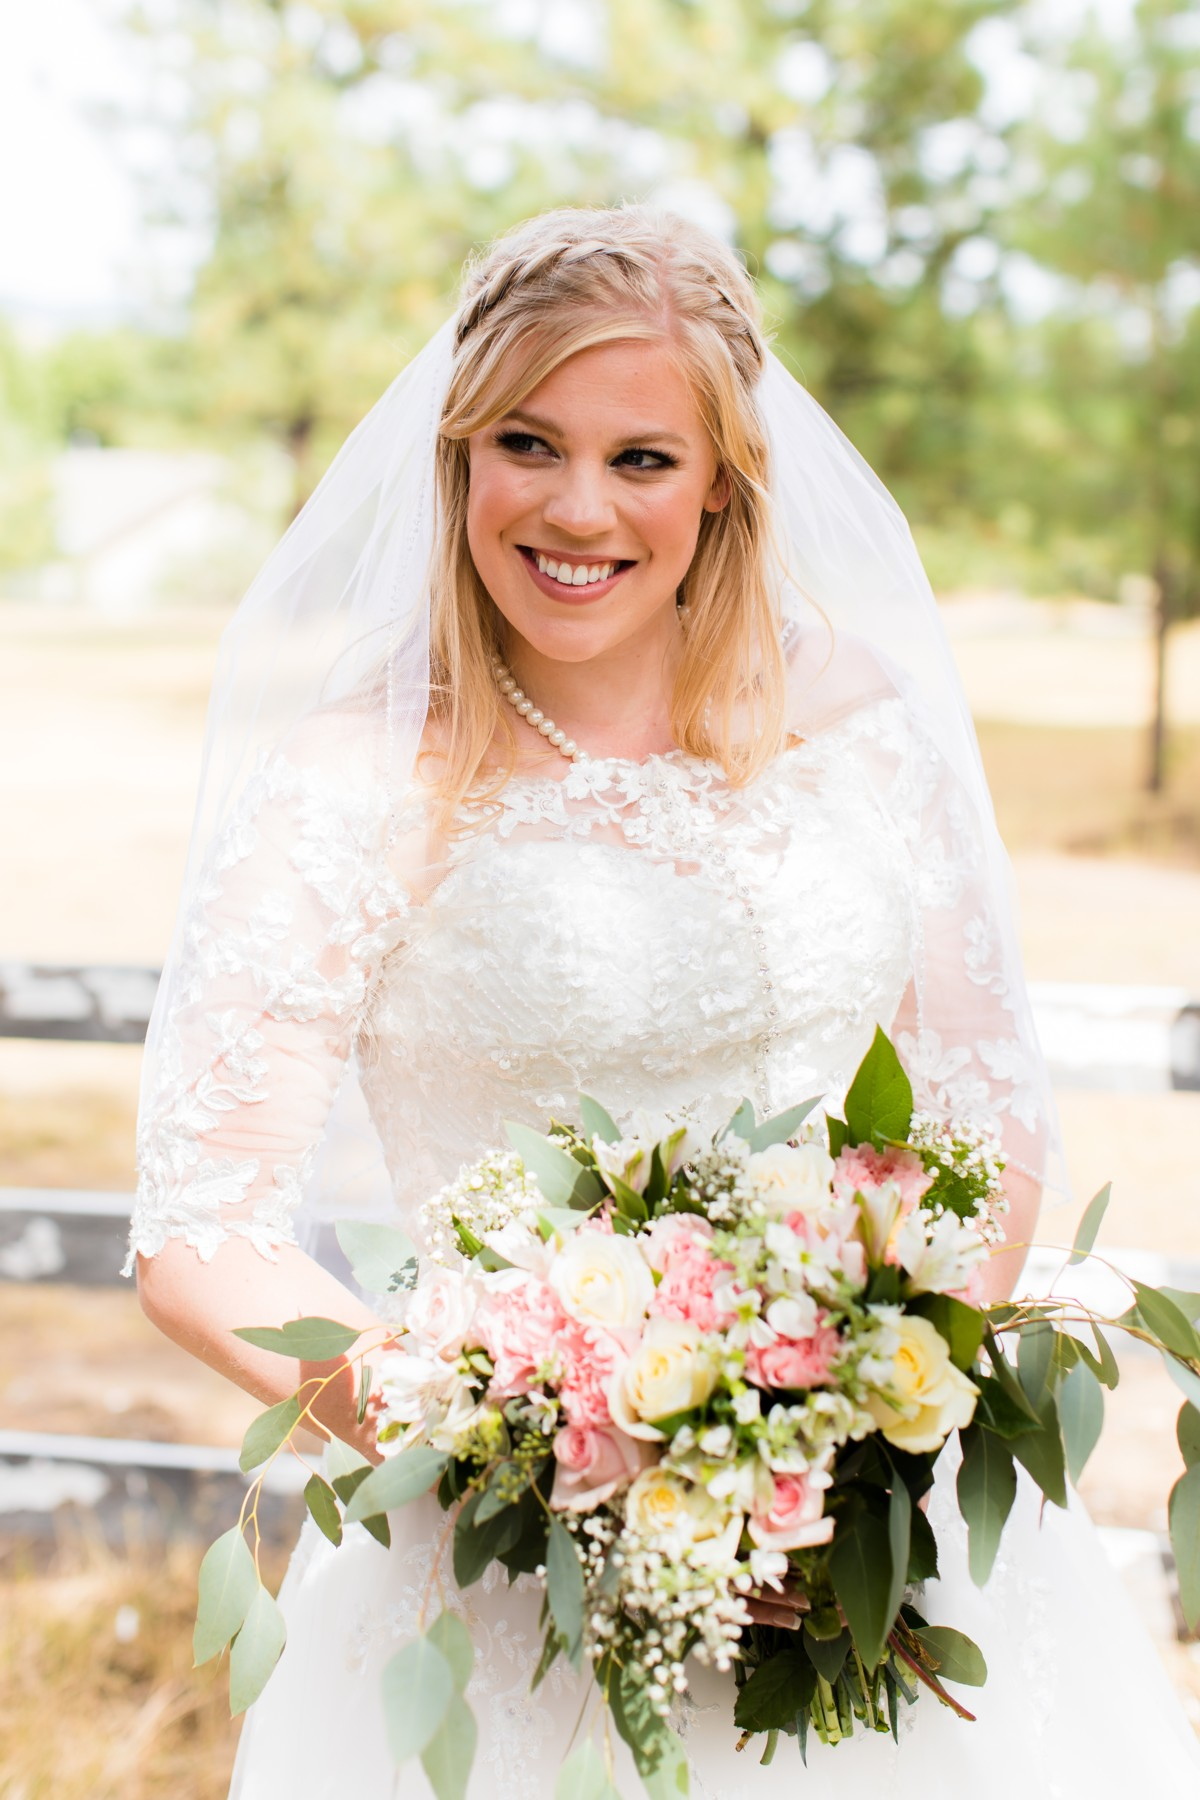 B&B Photography Lake Tahoe wedding - bride with bouquet